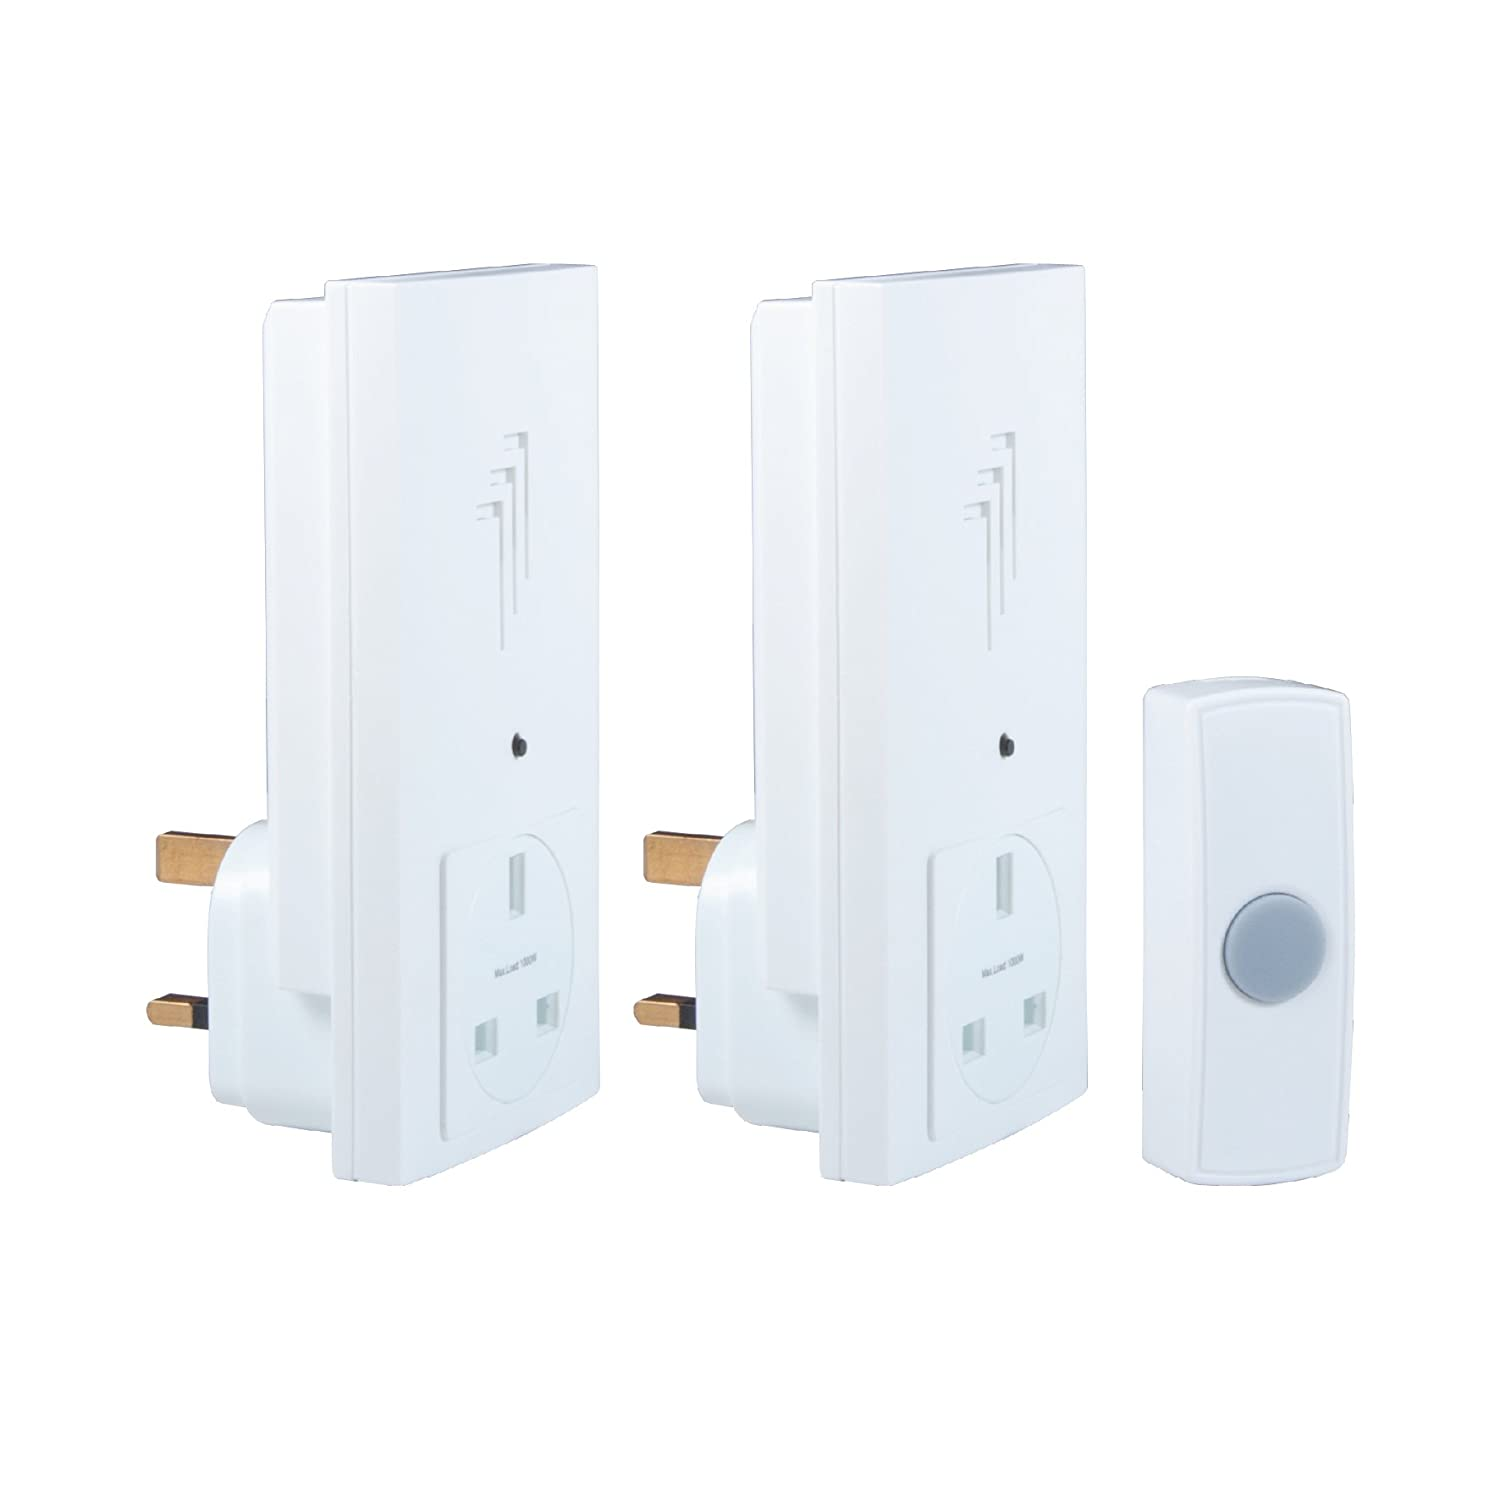 byron db333 30m wireless twin plugthrough door chime kit with 1 sound amazoncouk diy u0026 tools